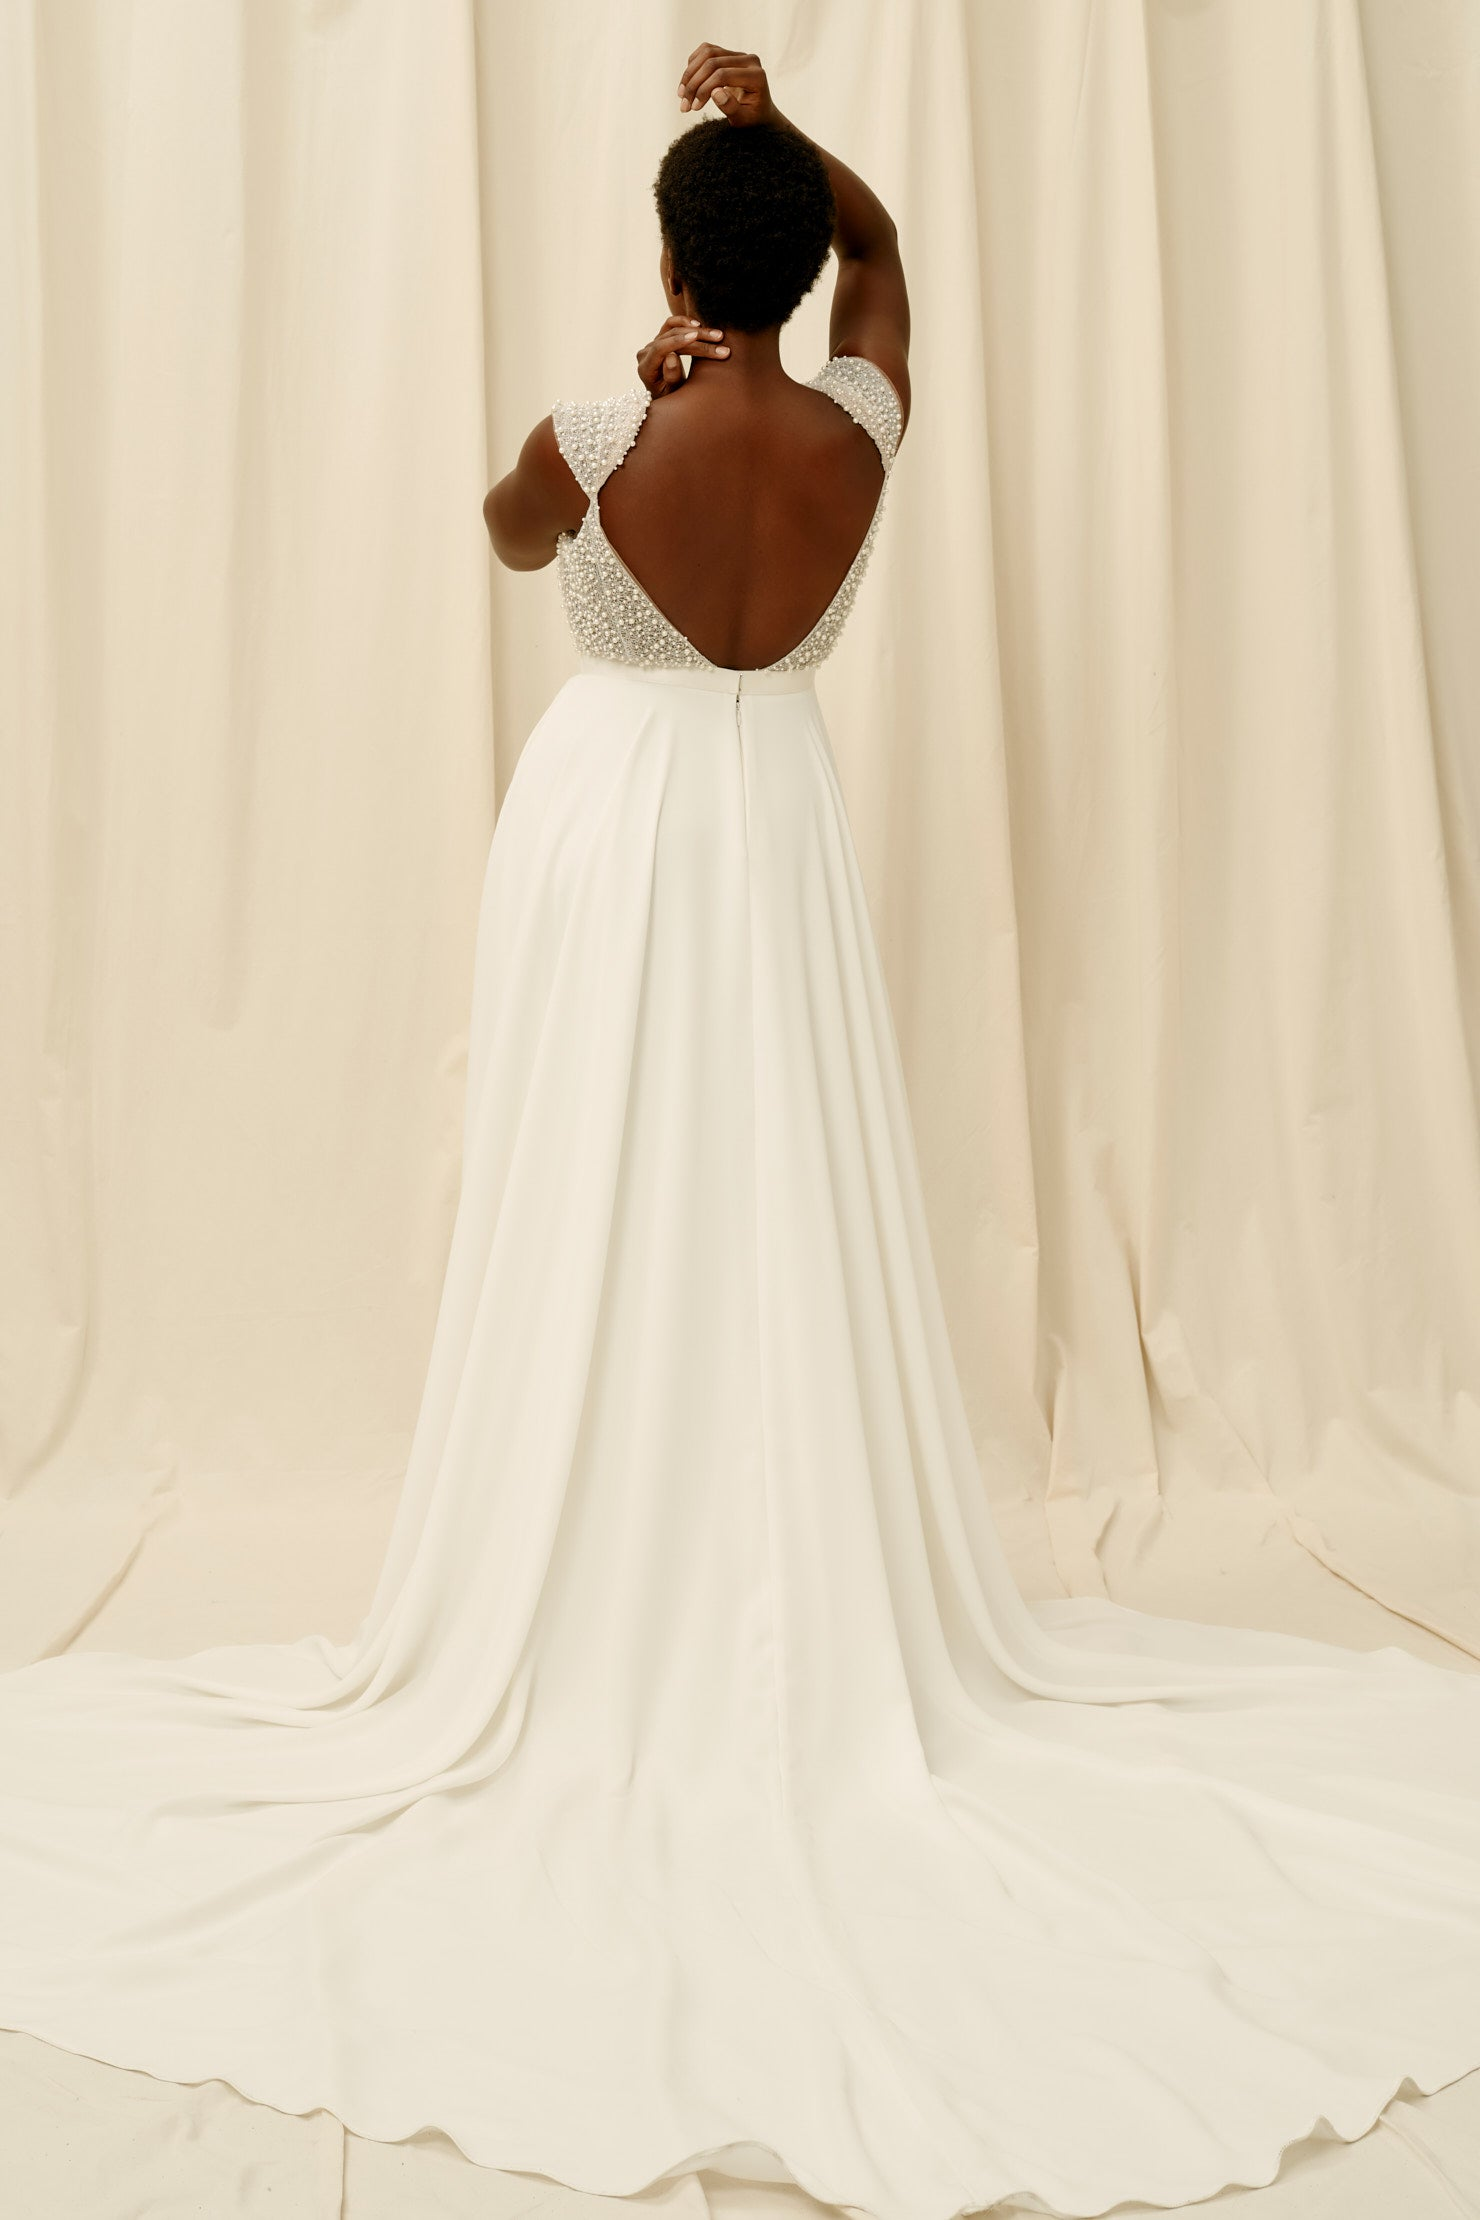 Crepe skirt wedding dress with pockets and cap sleeves